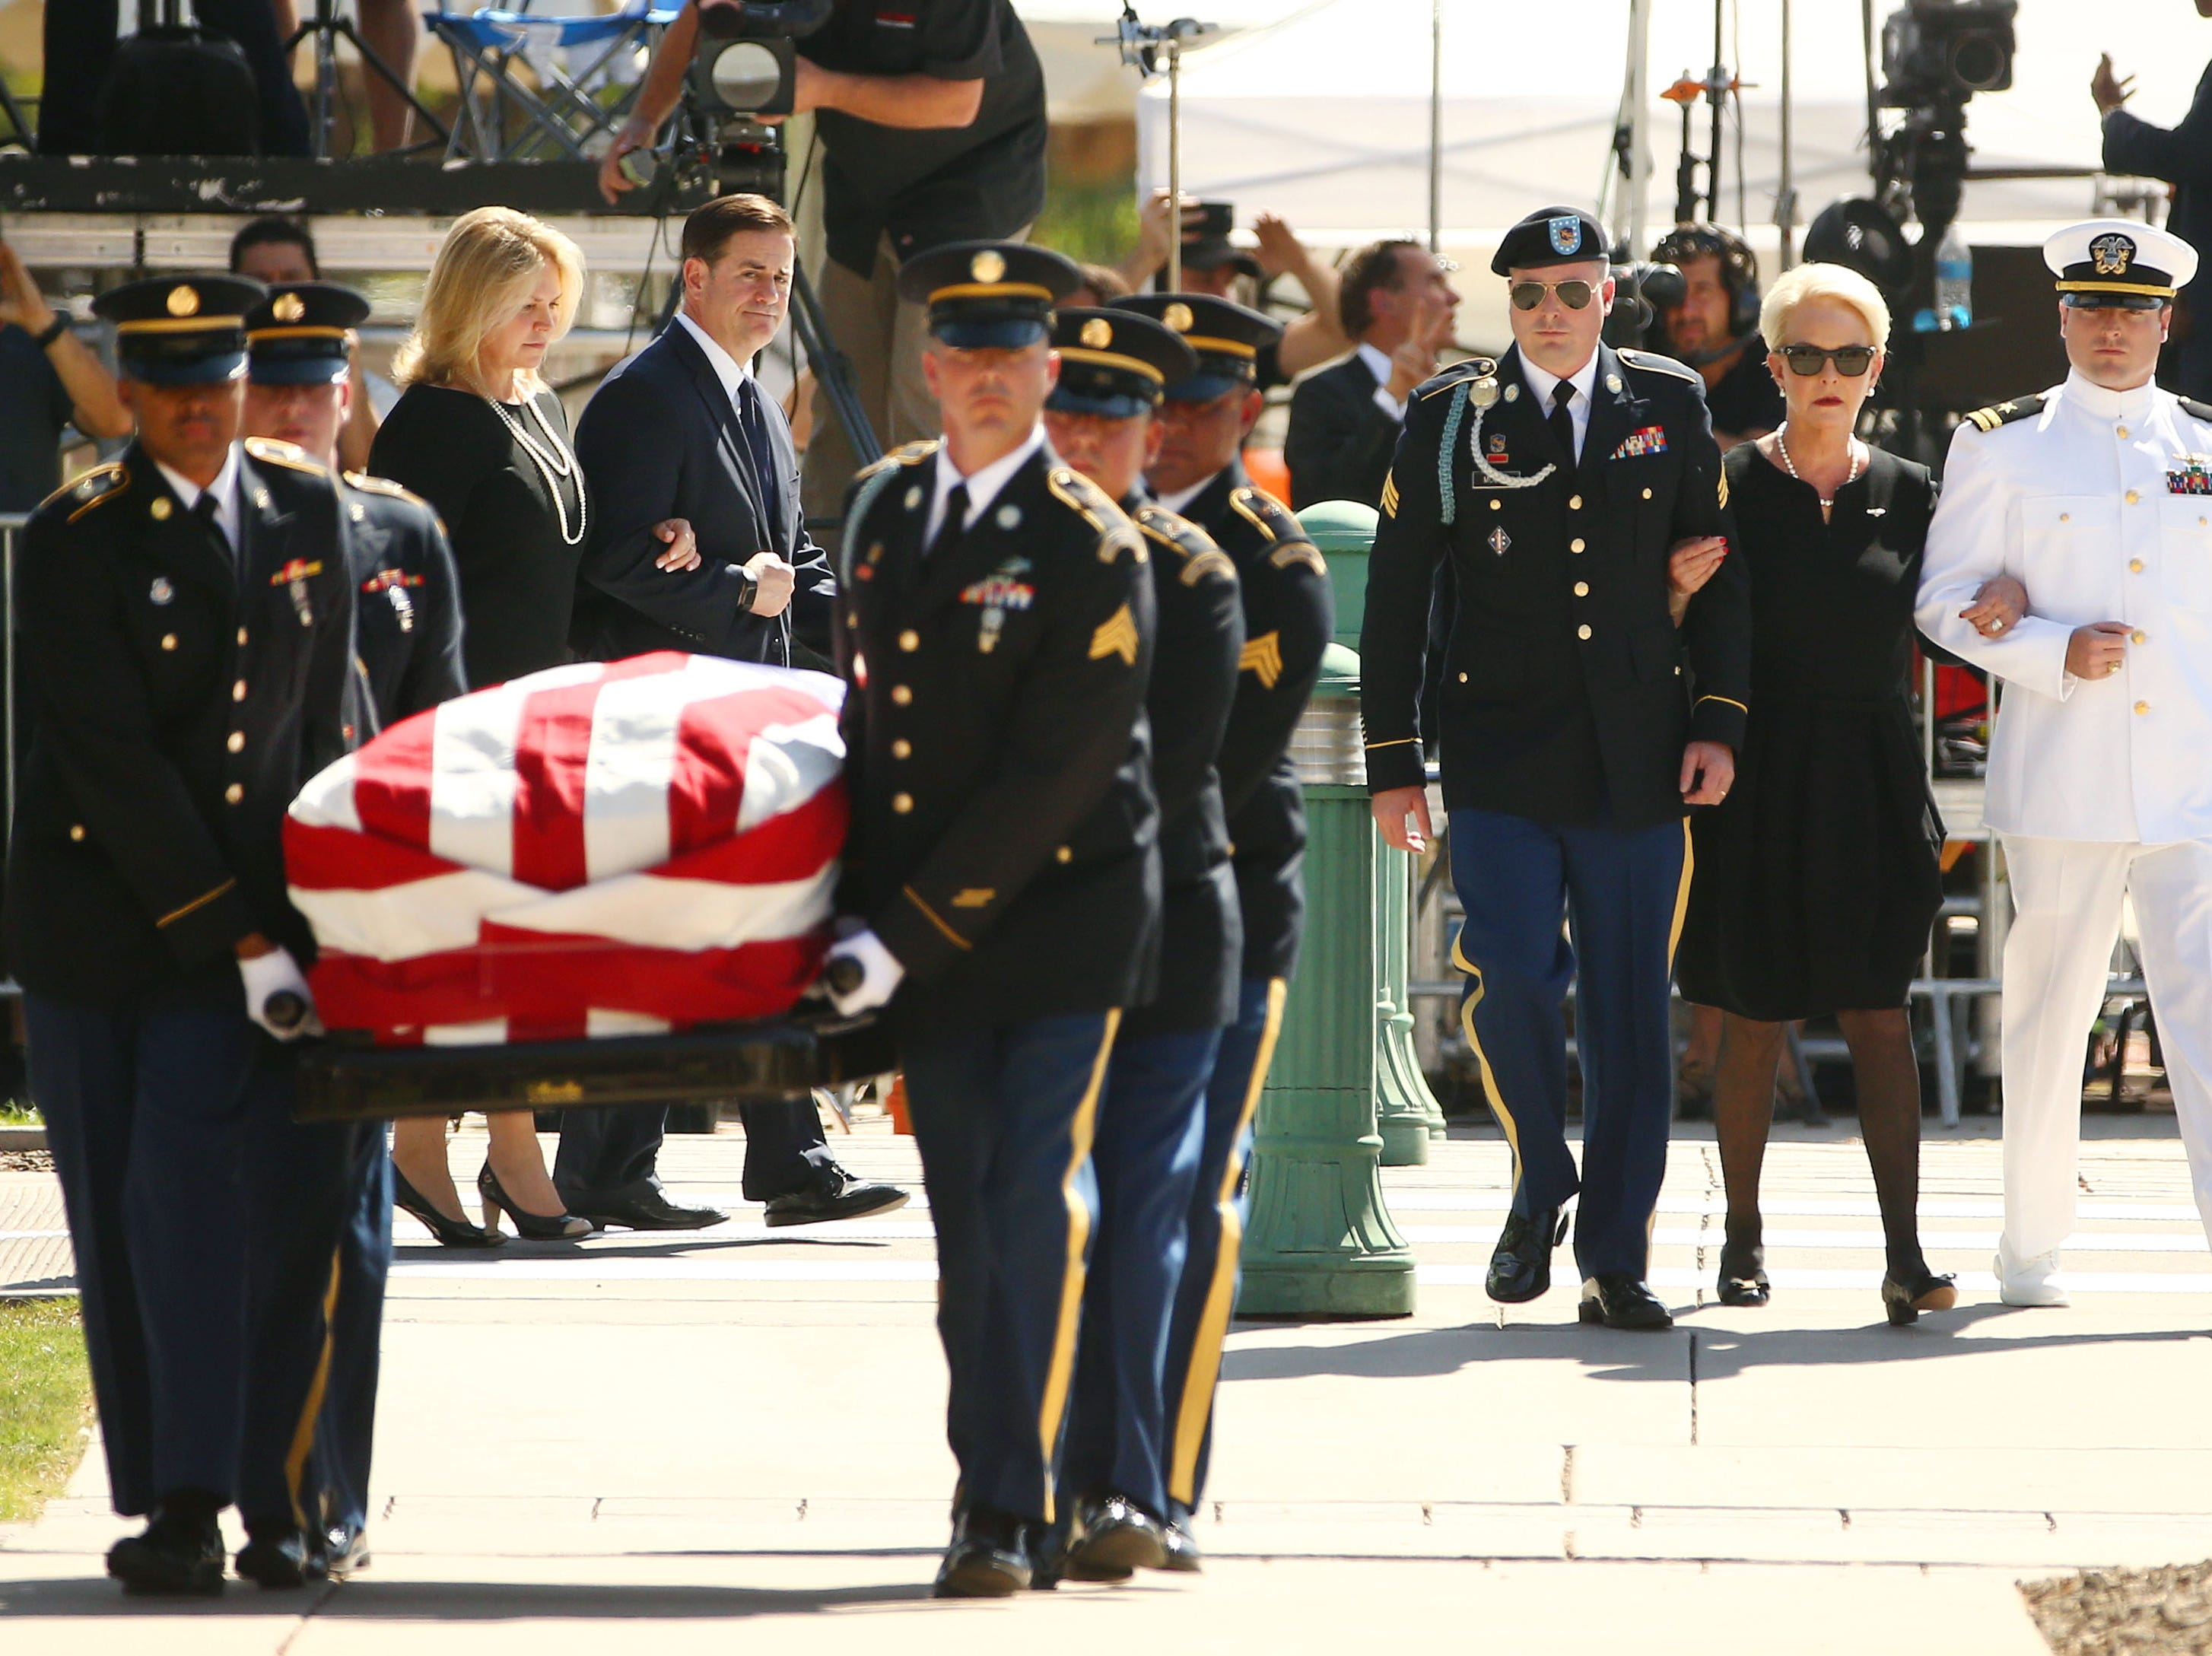 Mrs. Cindy McCain is escorted by her sons, Jimmy McCain and Jack McCain, and Arizona Gov. Doug Ducey and First Lady Angela Ducey, left, as they follow the casket of U.S. Sen. John McCain for his memorial service at the Arizona State Capitol.